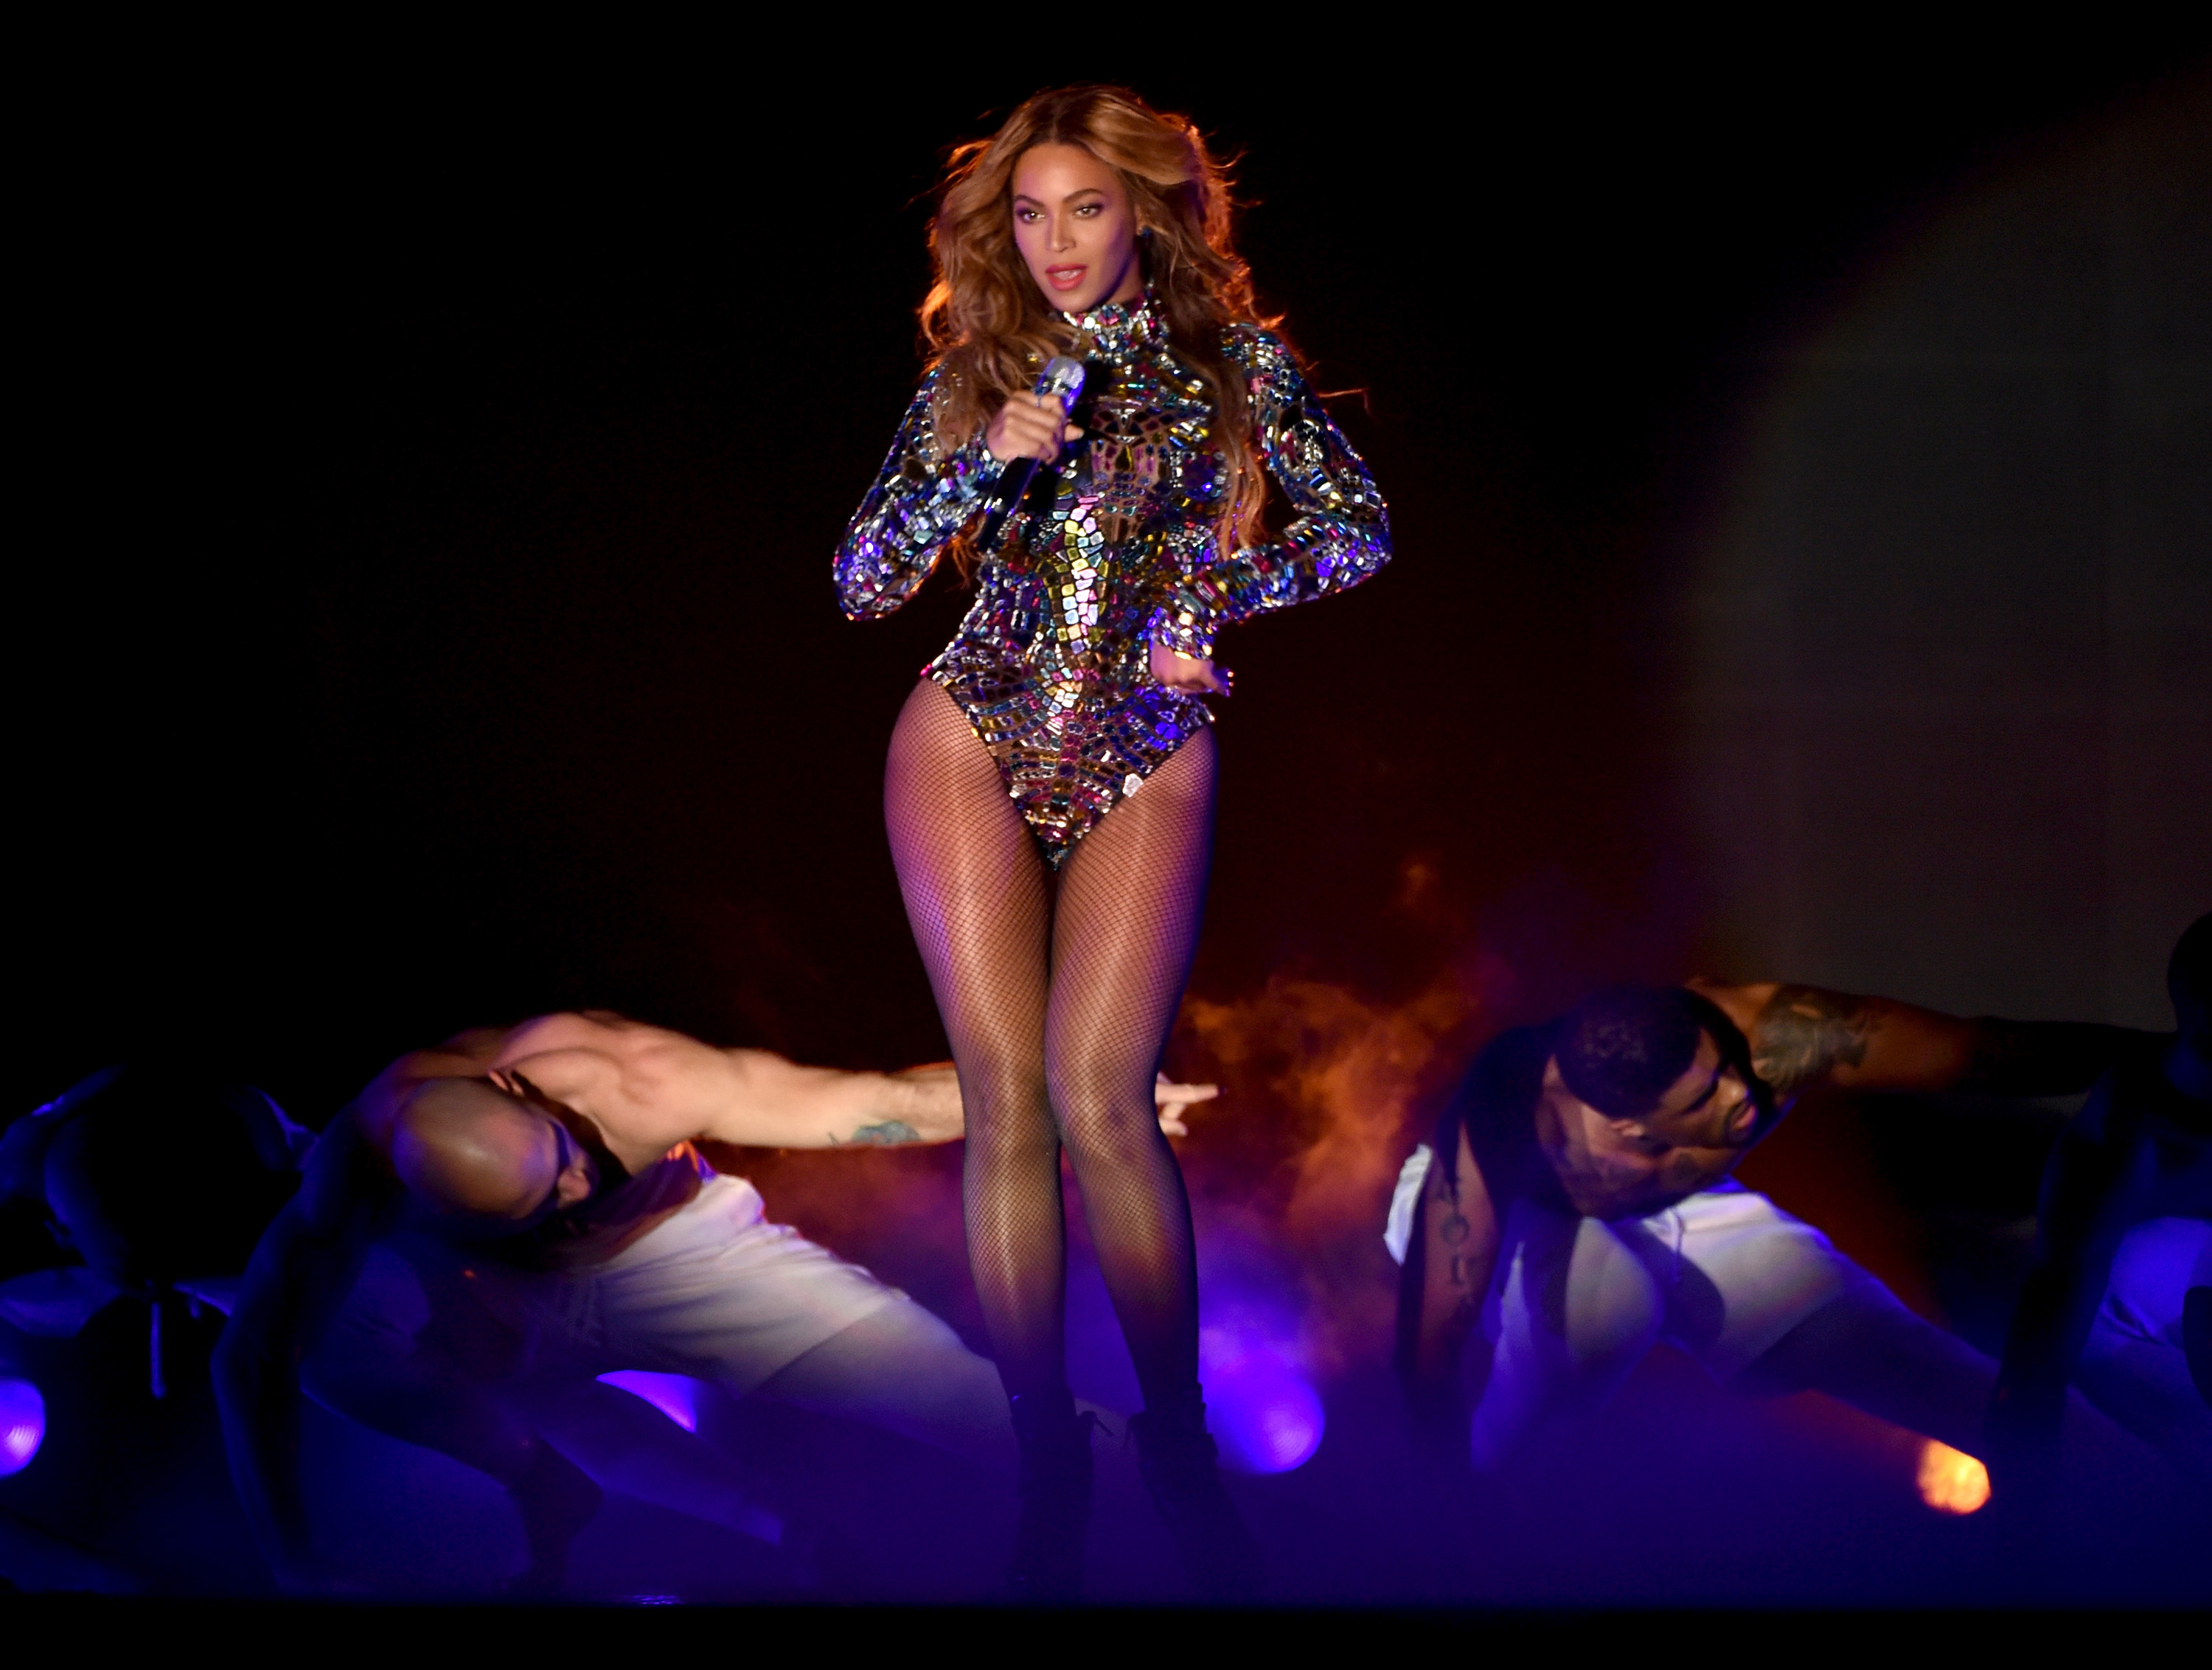 Singer Beyonce performs onstage during the 2014 MTV Video Music Awards at The Forum on August 24, 2014 in Inglewood, California.